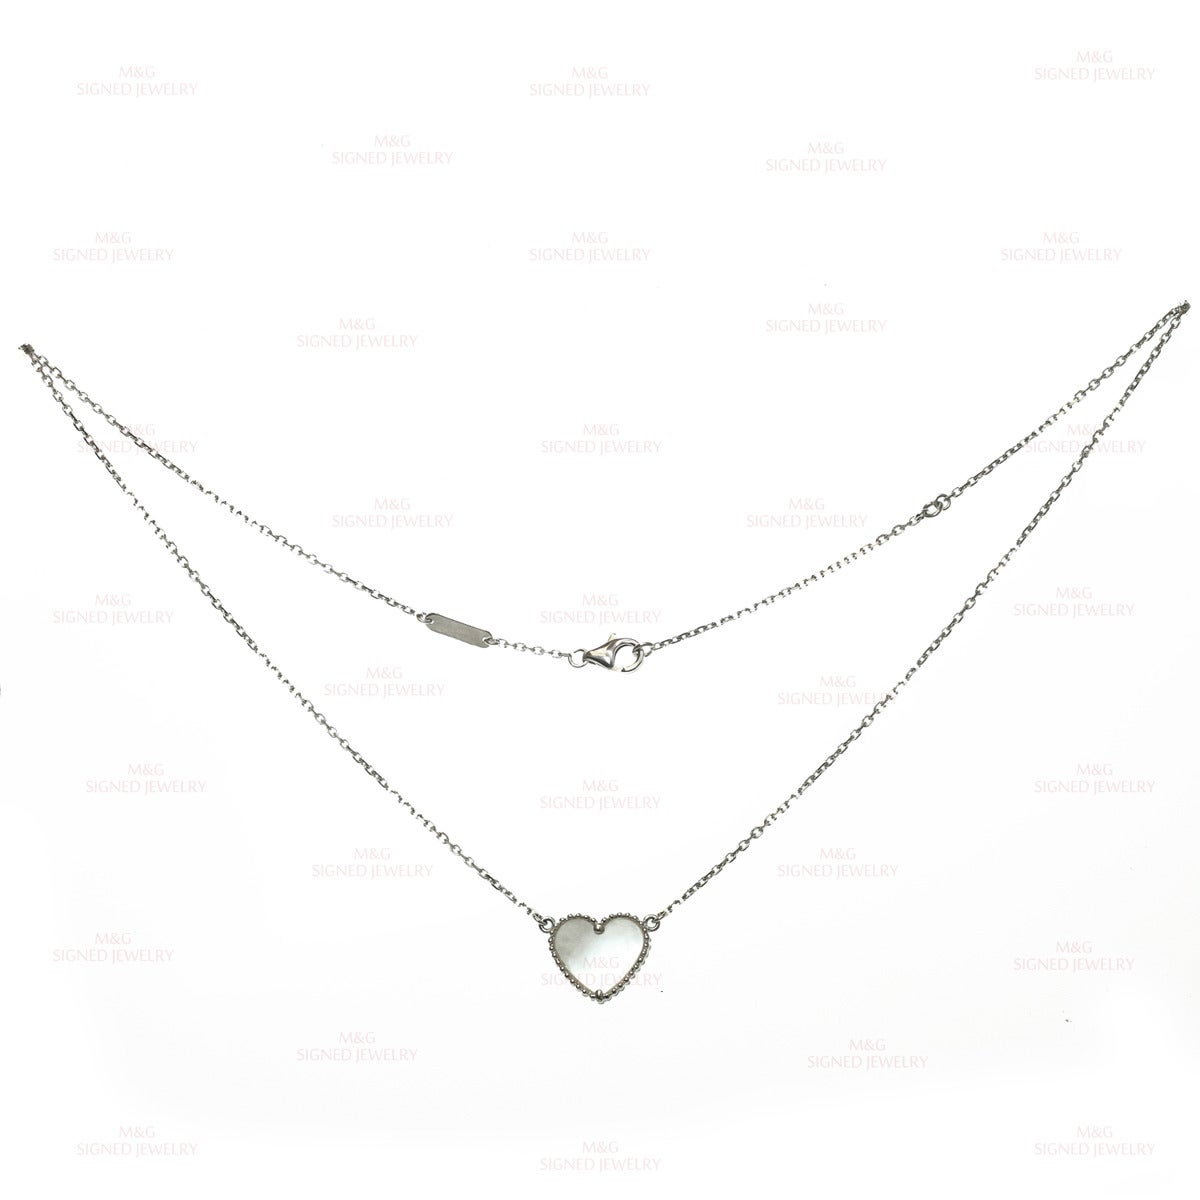 This romantic Van Cleef & Arpels necklace is made in 18k white gold and accented with a heart-shaped mother-of-pearl pendant. Made in France circa 2000s. Measurements: 0.47